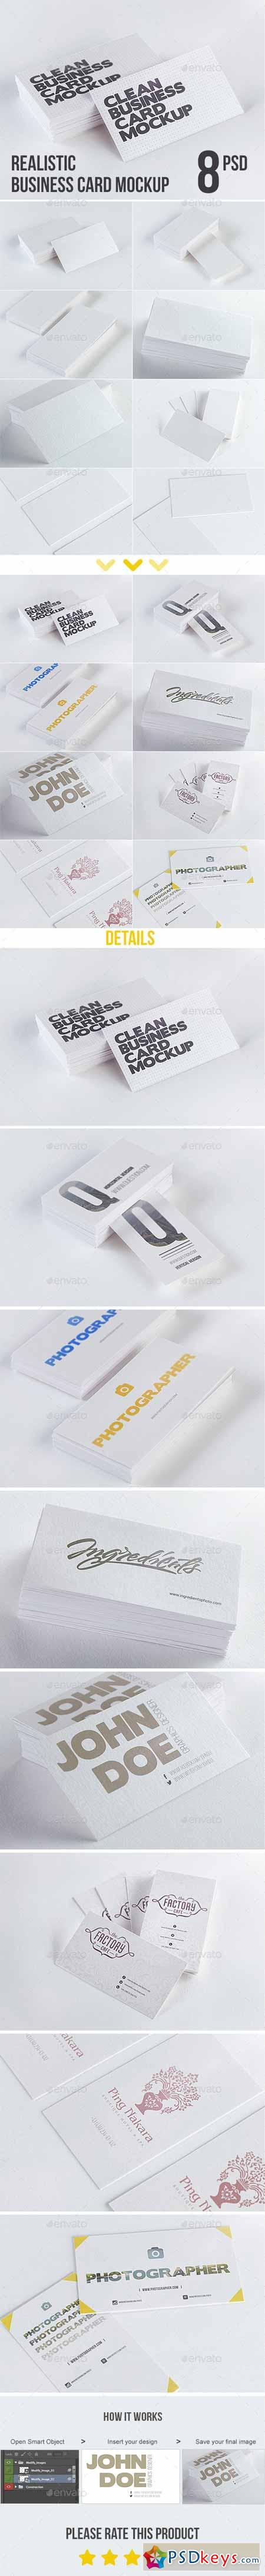 simple business card mockup  free photoshop